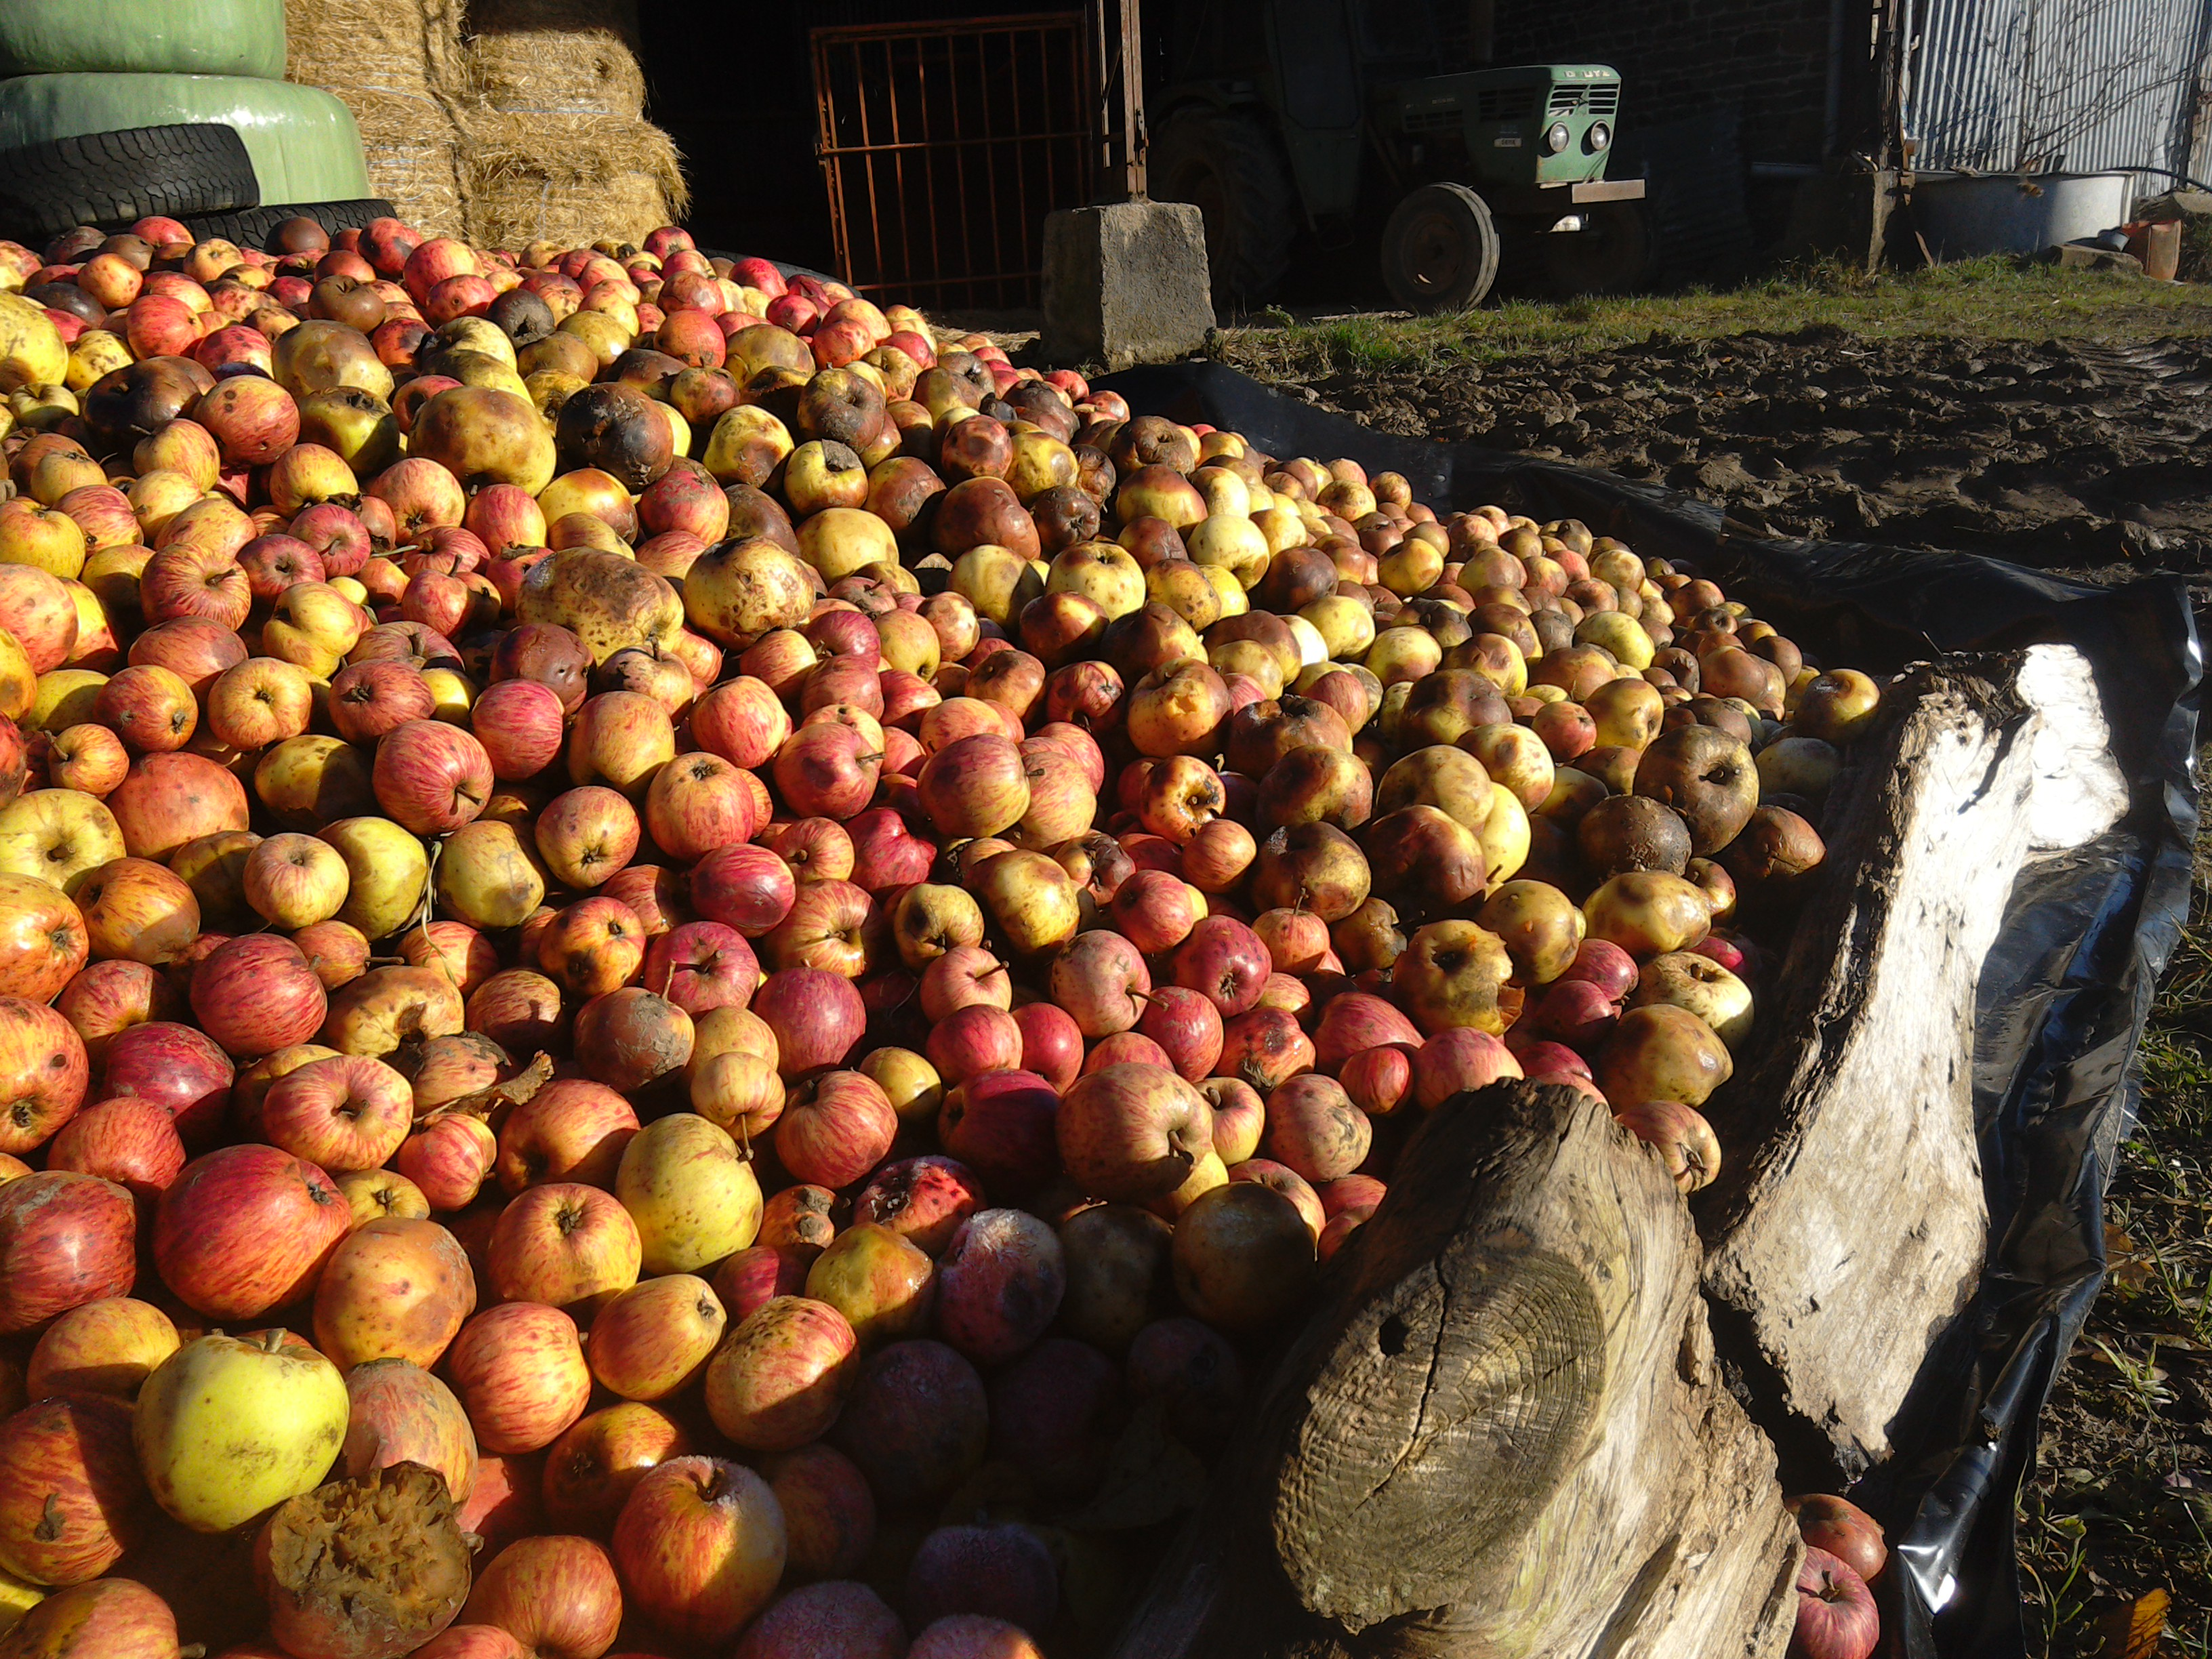 Cider apples, Normandy